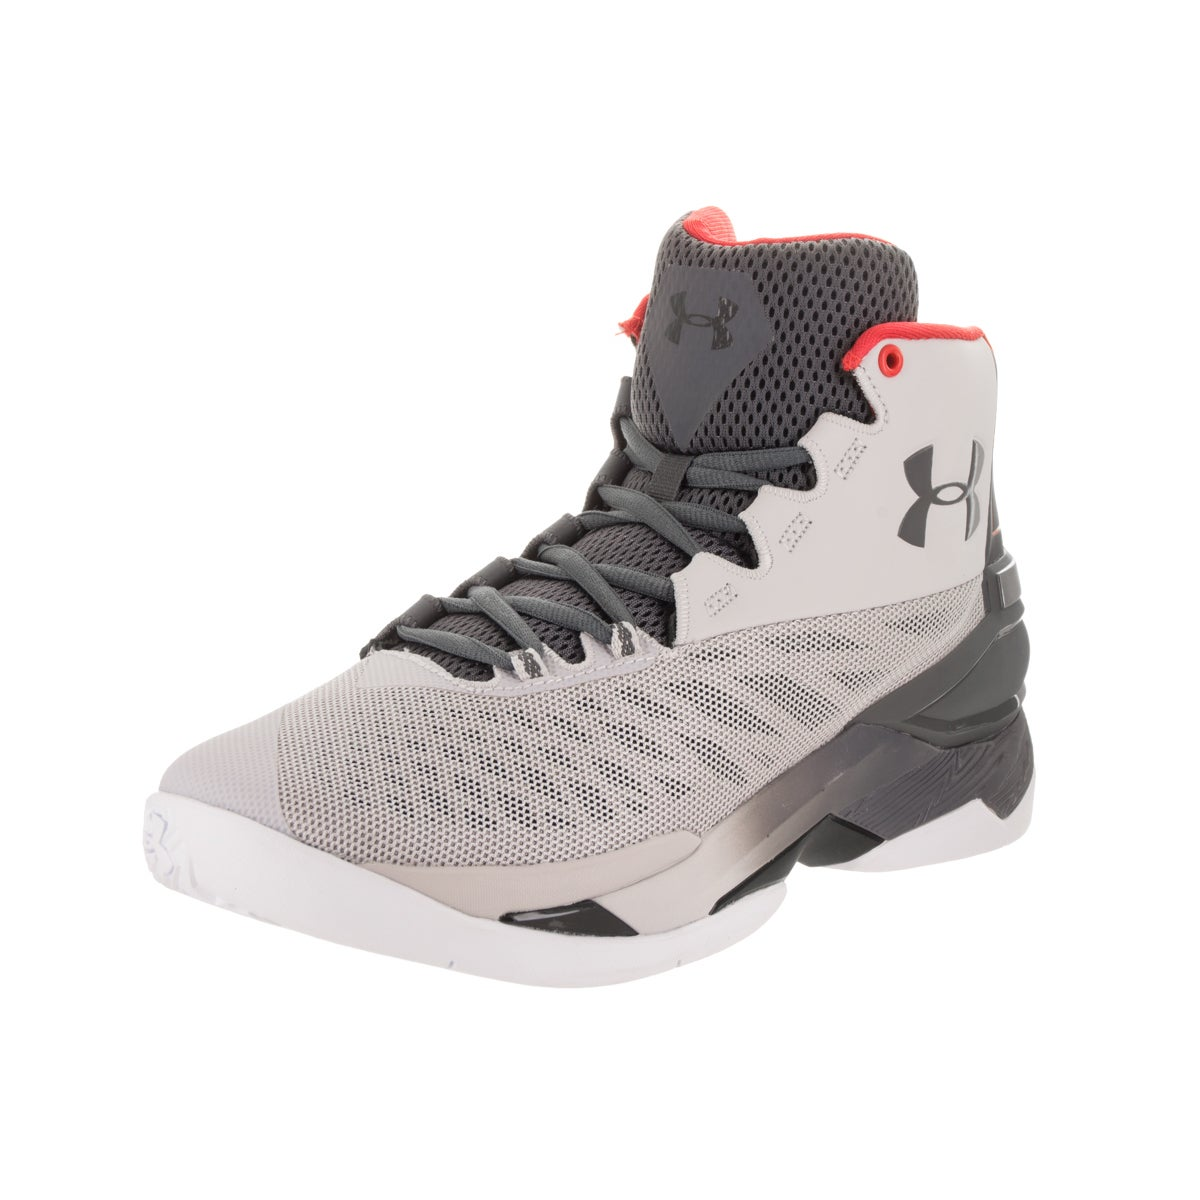 2c35b467c606 Shop Under Armour Men s Longshot Basketball Shoes - Free Shipping Today -  Overstock - 14964612